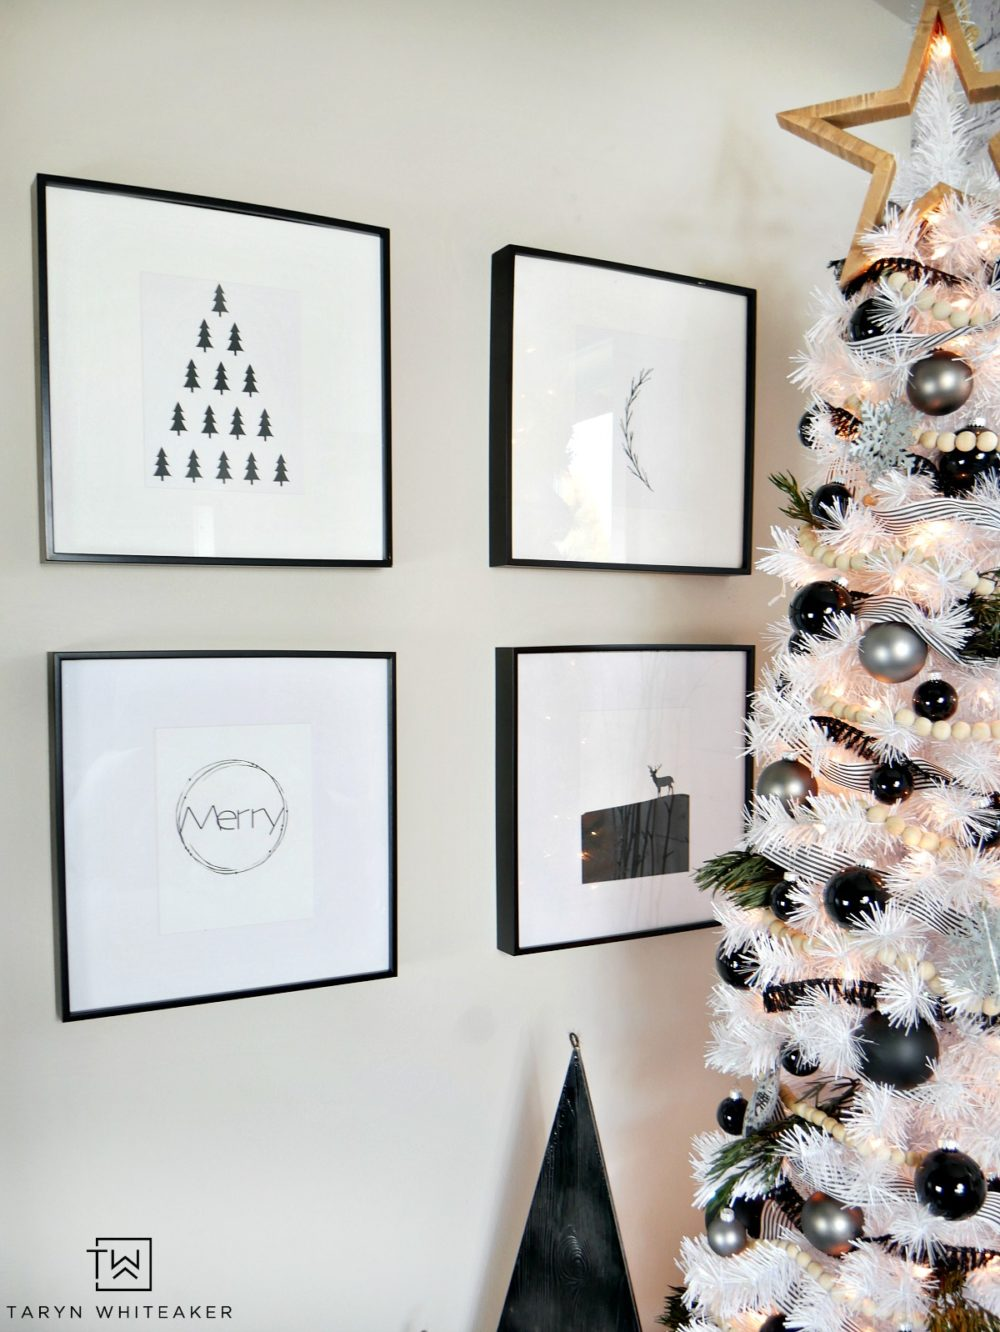 Taryn creates this Modern Black and White Christmas Tree display in her home using a tall white skinny tree with black and silver ornaments and wood!